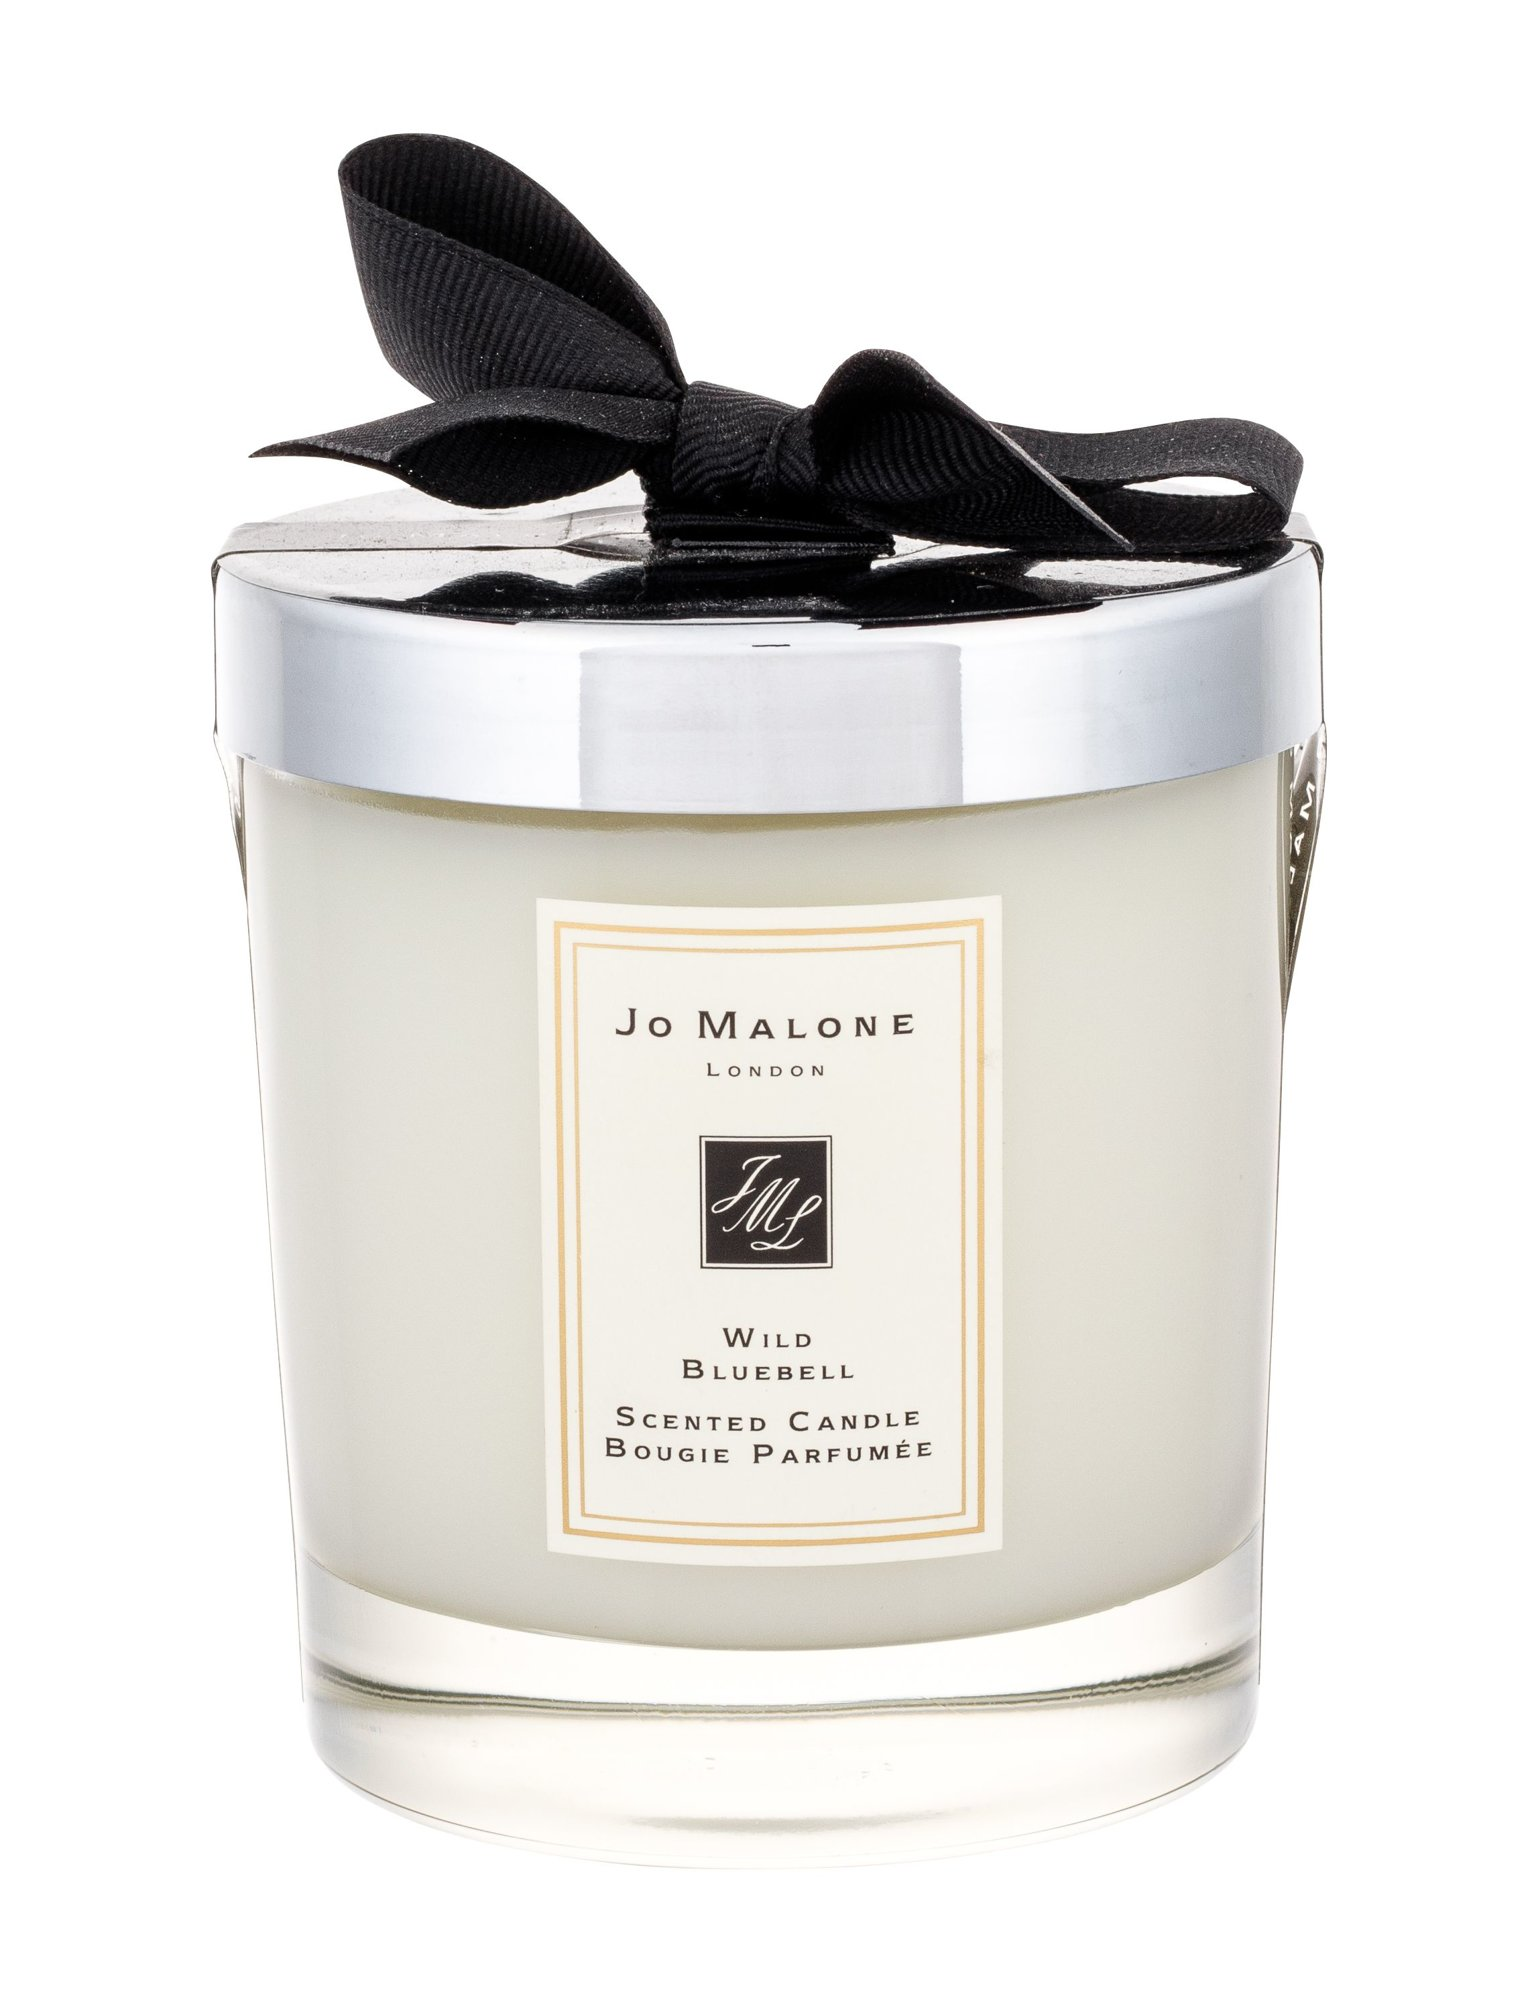 Jo Malone Wild Bluebell Scented Candle 200ml